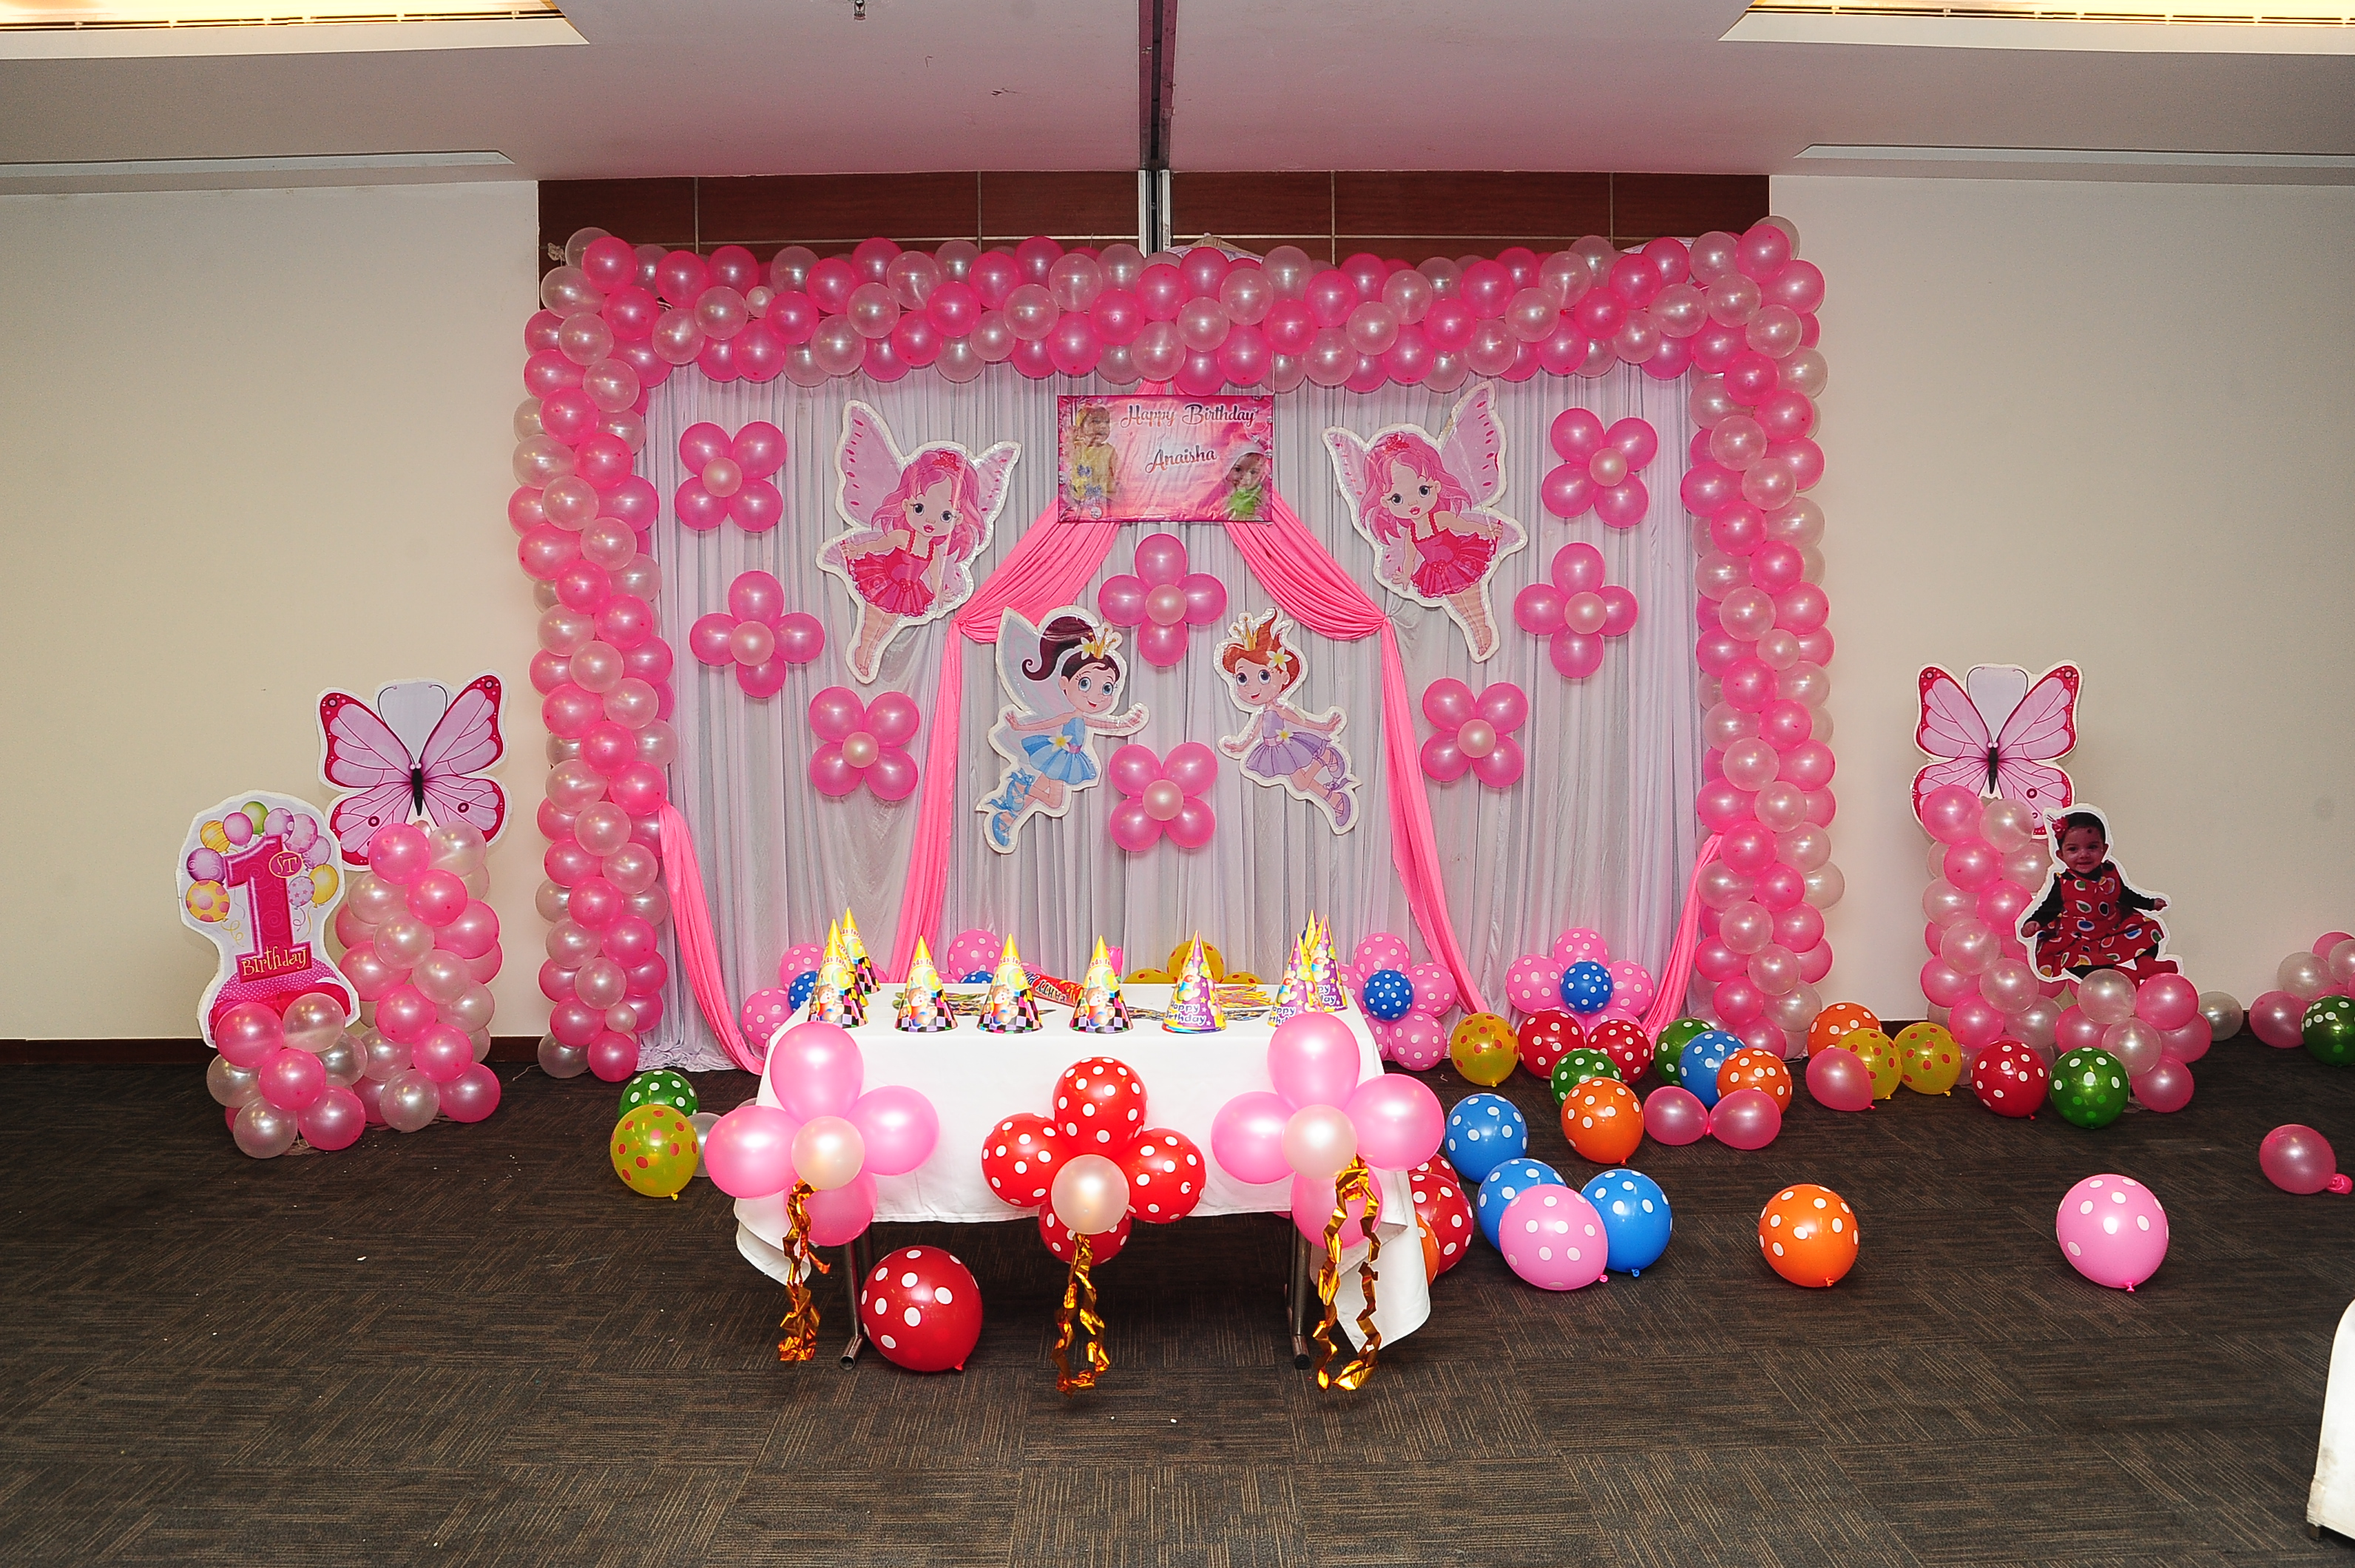 Baby Angel Theme Birthday Party Decorators Bangalore